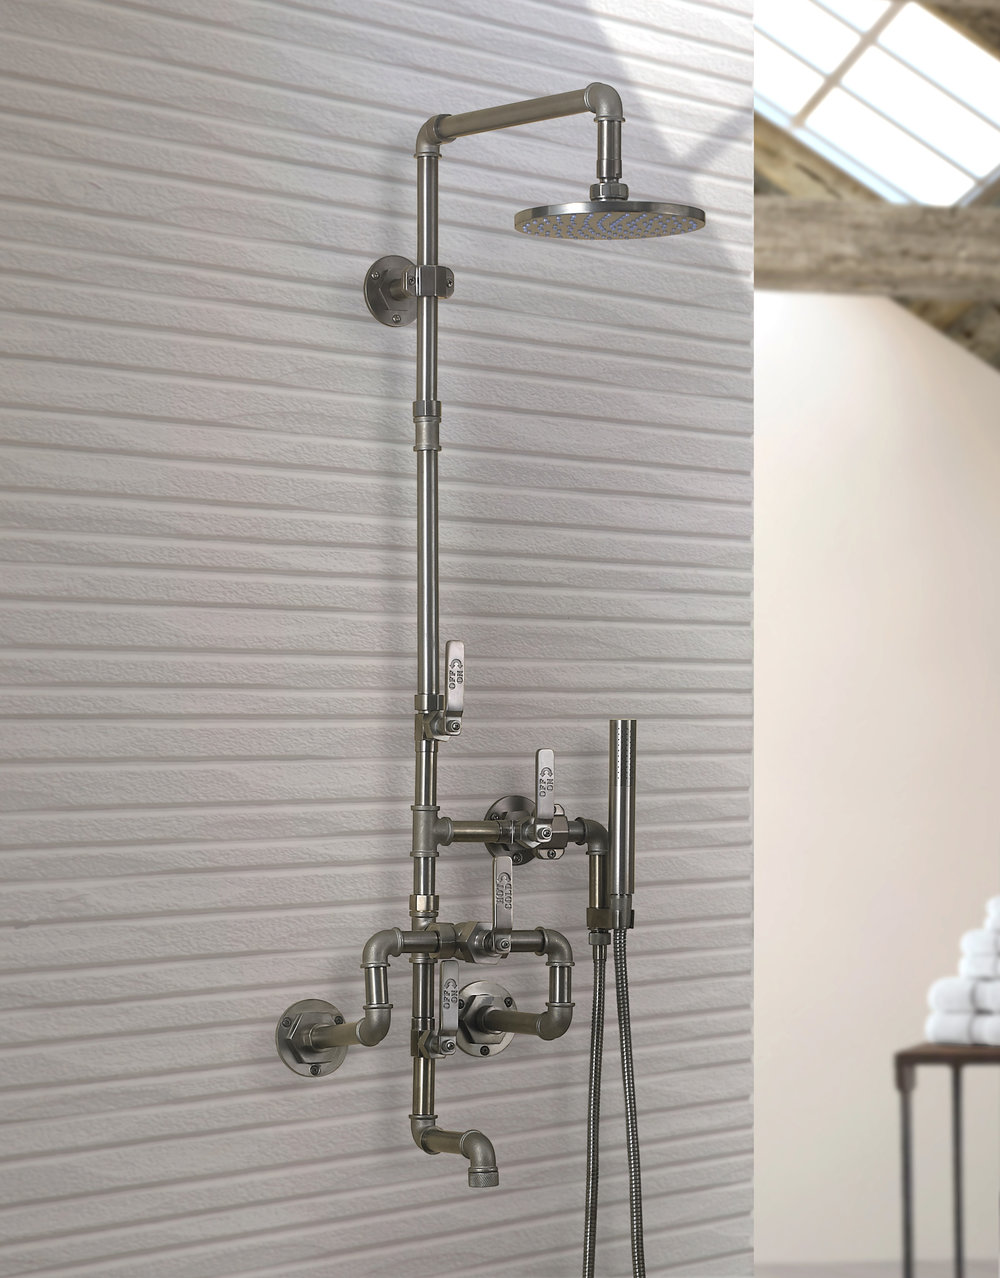 Elan-Vital-Thermostatic-Shower1.jpg